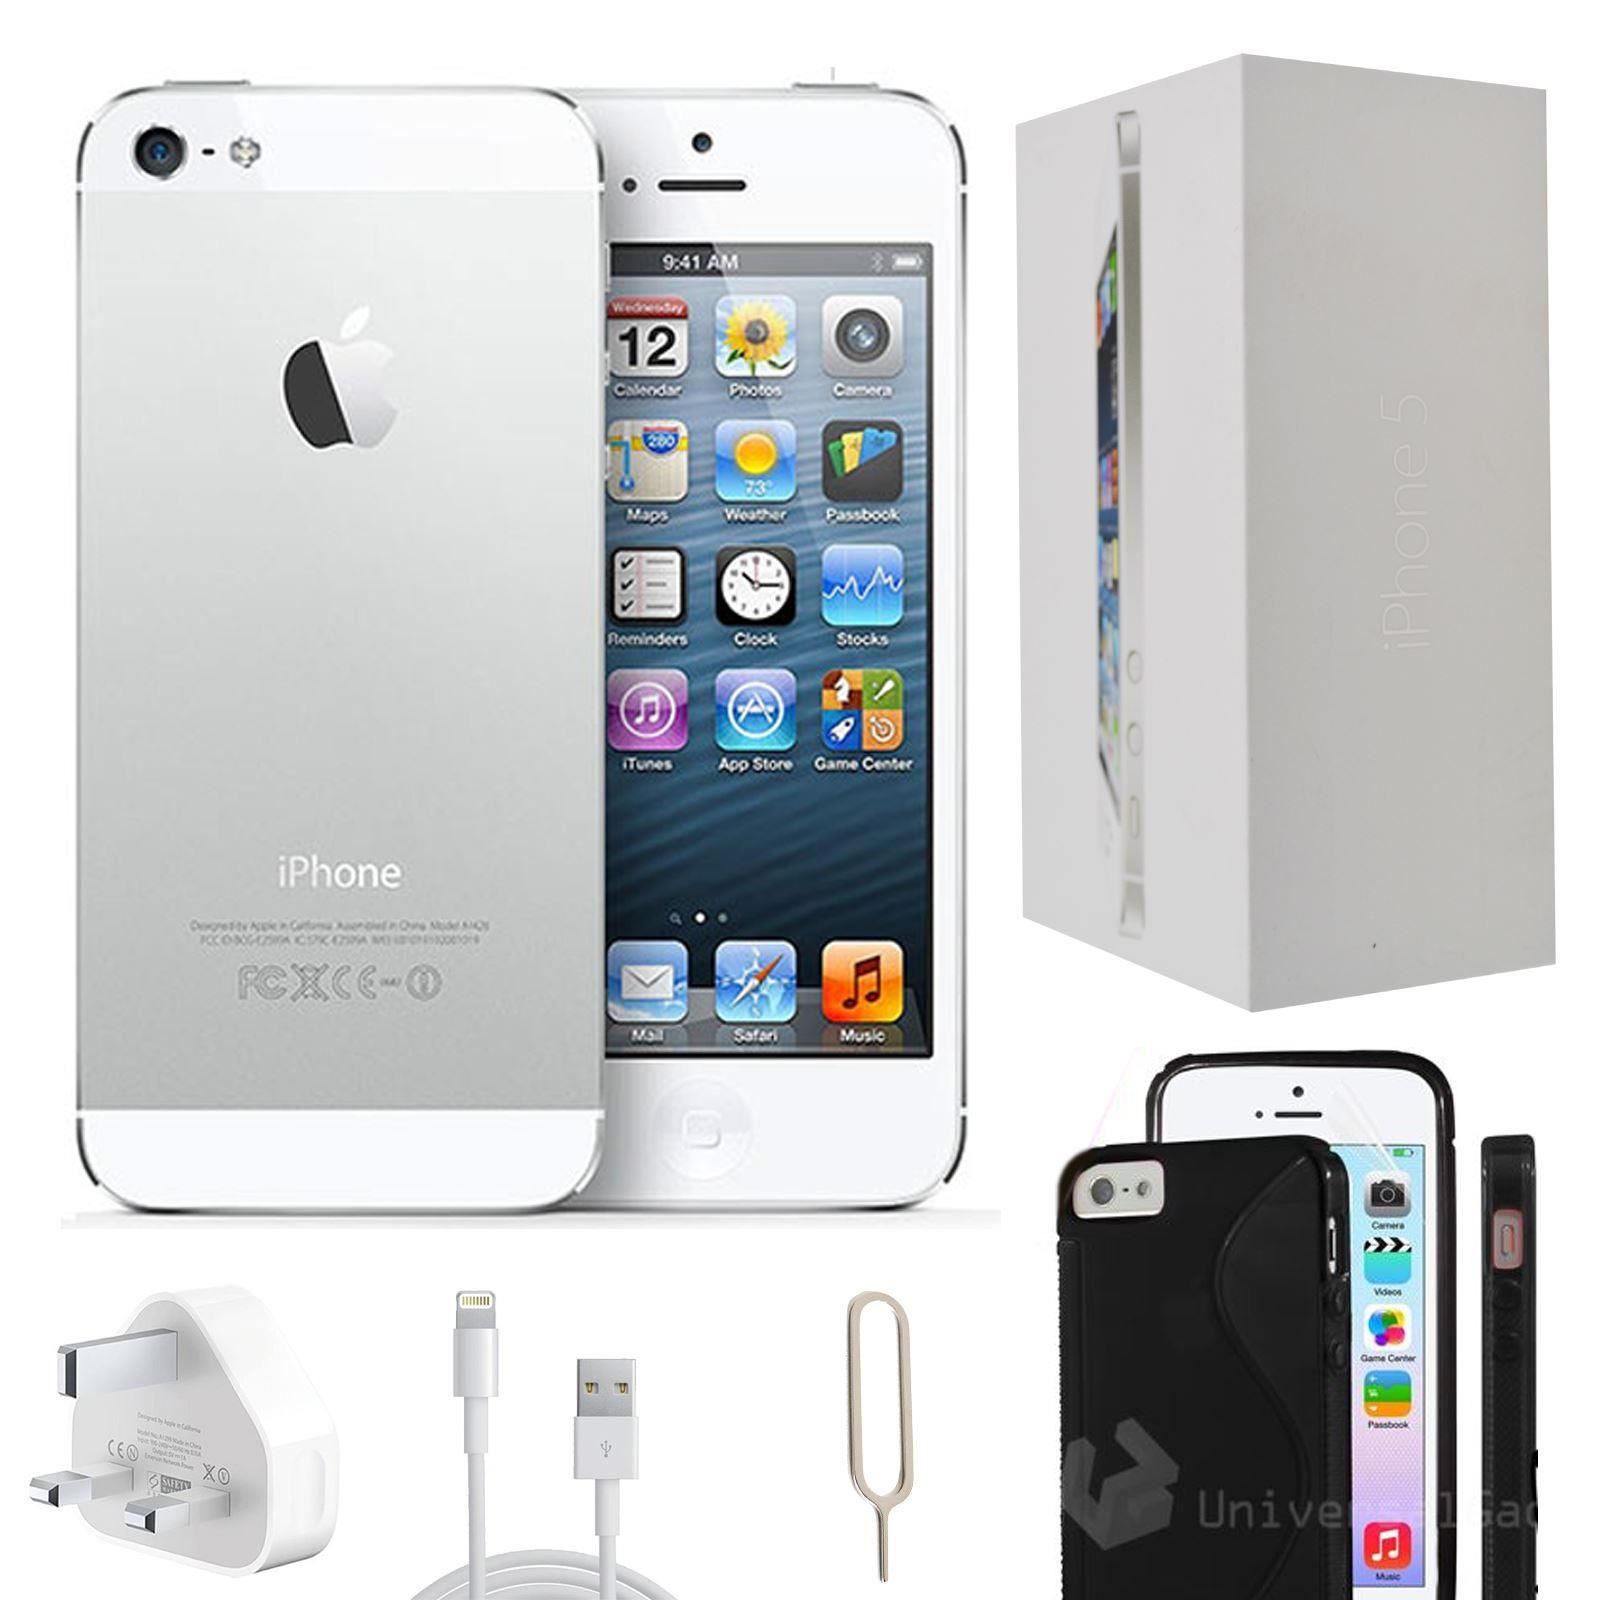 Iphone 5s 16gb brand new unlocked genuine apple iphone best price in - Apple Iphone 5 32gb White Unlocked Refurbished Grade A Accessories